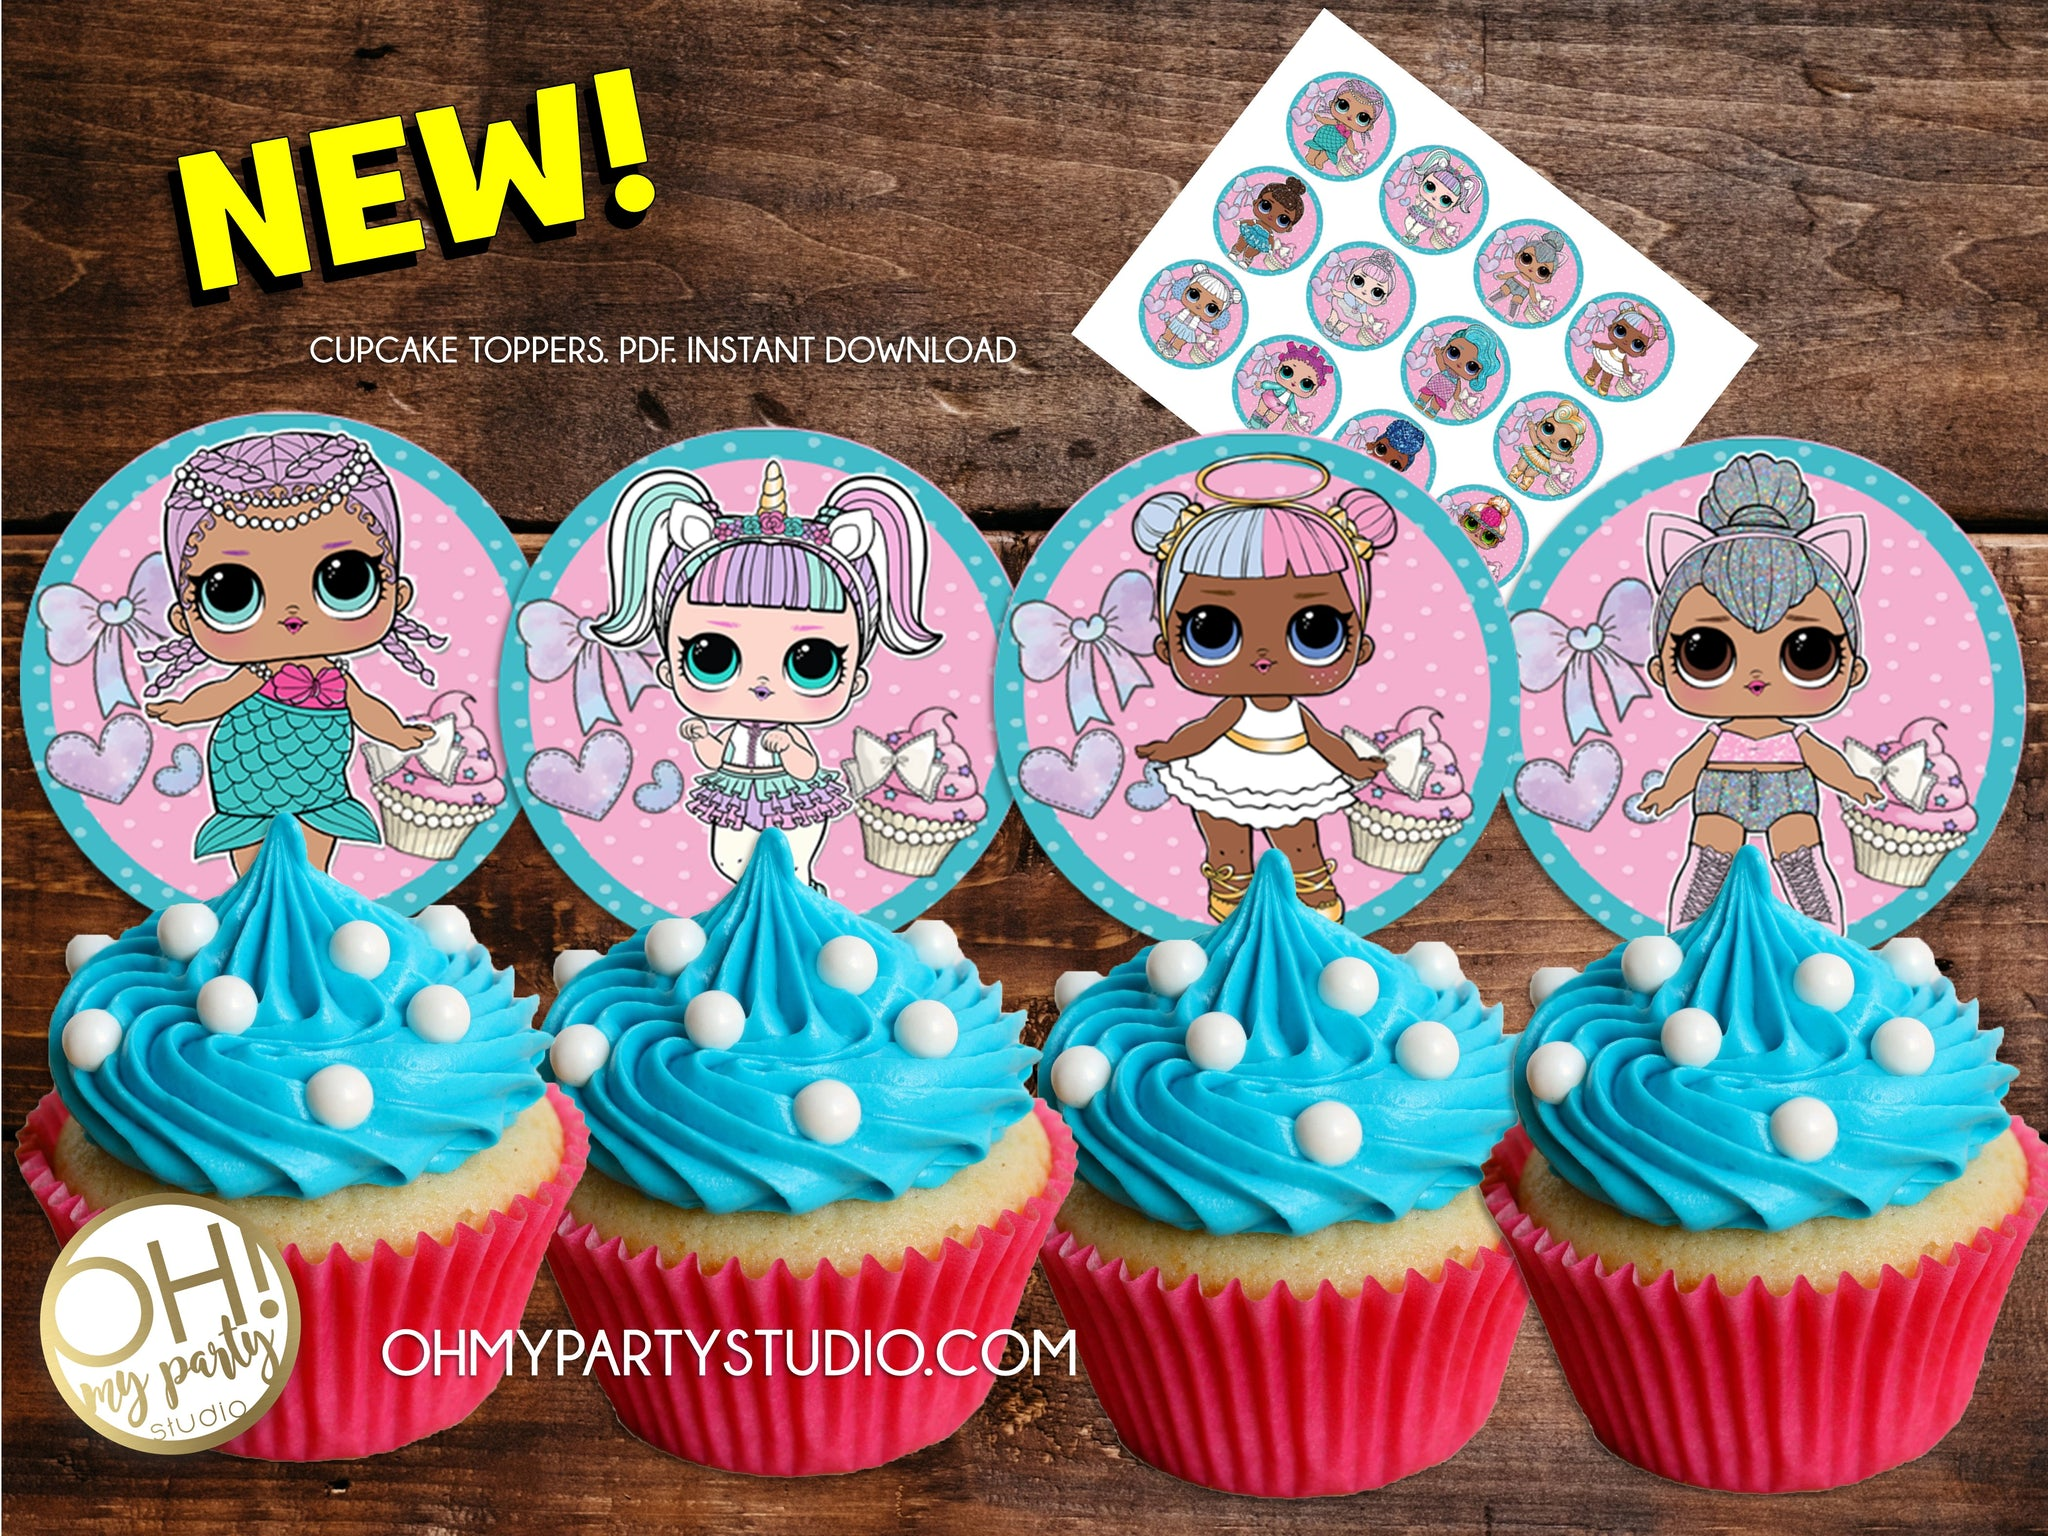 LOL DOLLS PARTY IDEAS, LOL DOLLS BIRTHDAY PARTY, LOL DOLLS PARTY, LOL DOLLS BIRTHDAY, LOL DOLLS PARTY PRINTABLE, LOL DOLLS BIRTHDAY PARTY, LOL DOLLS PARTY PRINTABLES, LOL DOLLS INSTANT DOWNLOAD, LOL DOLLS CUPCAKE TOPPERS, LOL DOLLS BANNER, LO SURPRISE PARTY IDEAS, LOL SURPRISE DECORATIONS, LOL SURPRISE PARTY PRINTABLES, LOL SURPRISE PARTY SUPPLIES, LOL SURPRISE PARTY DECORATIONS